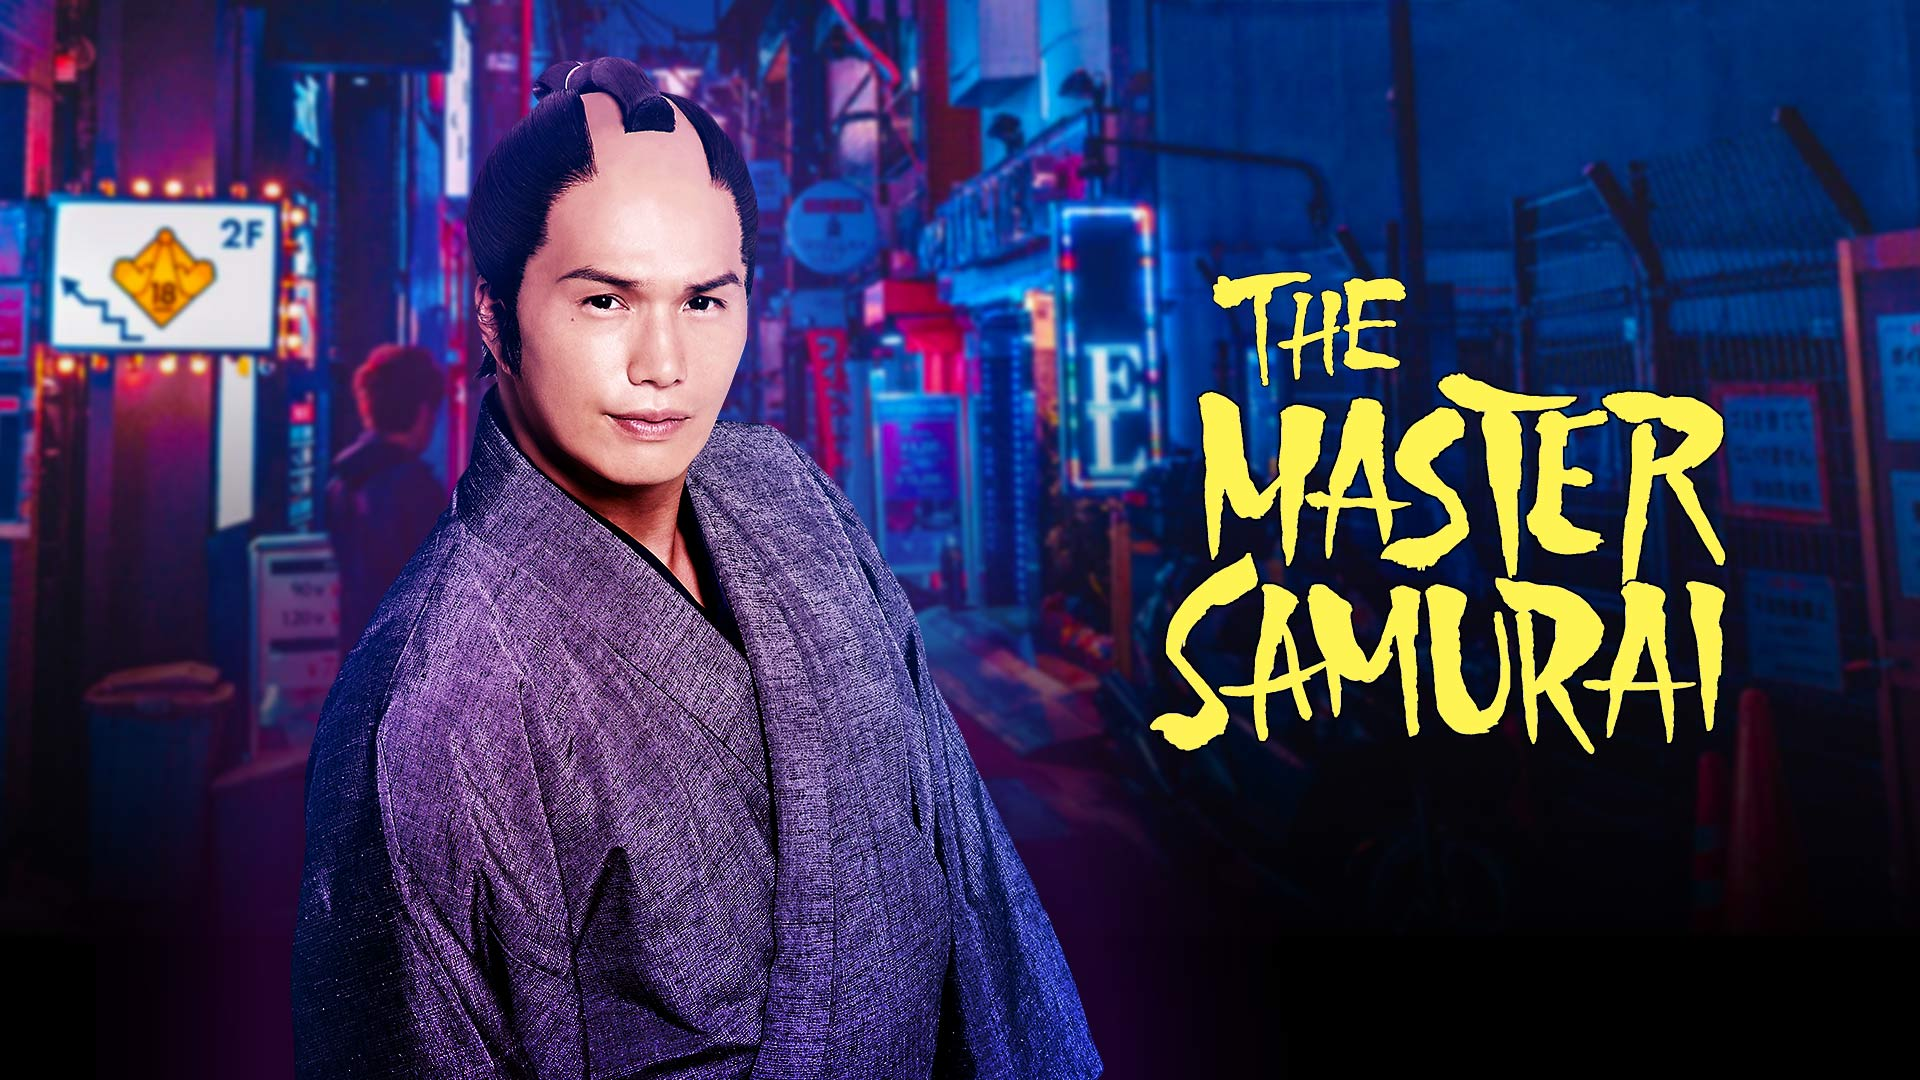 The Master Samurai